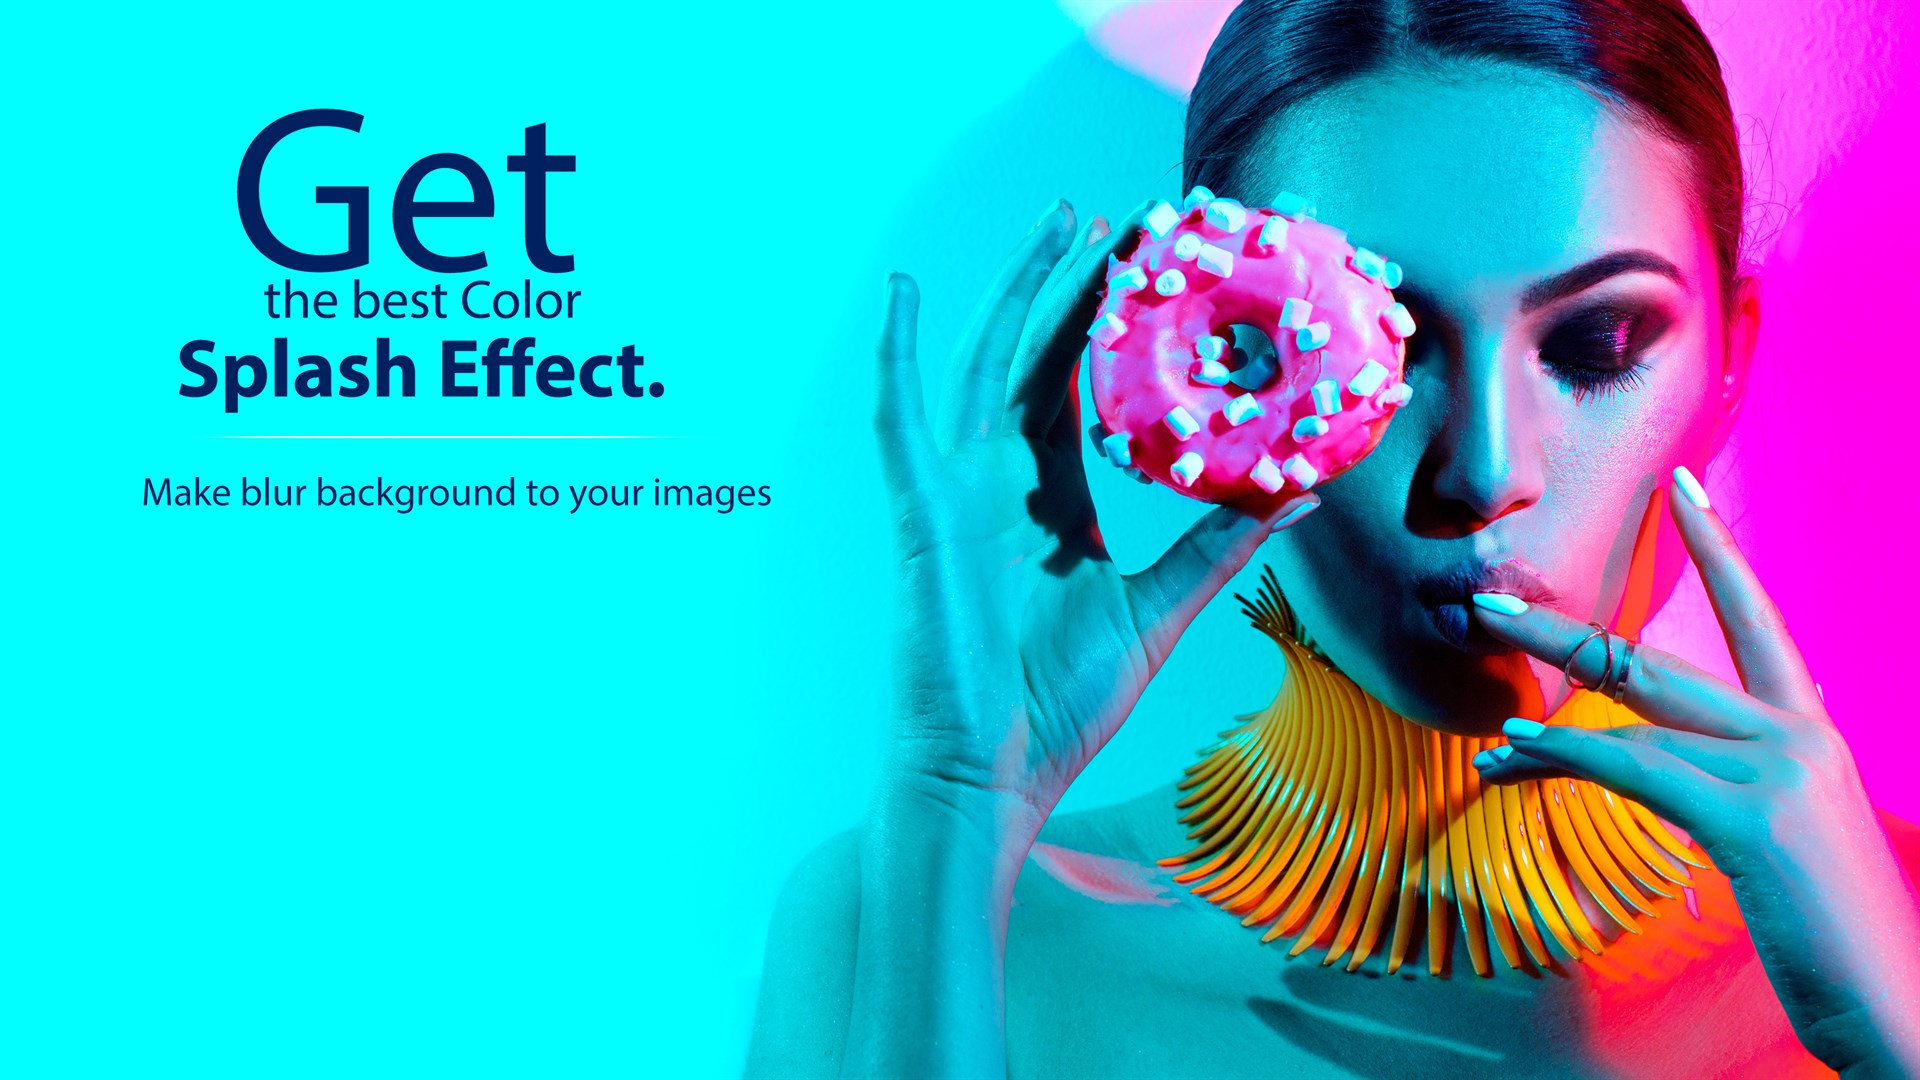 Get color touch effects photo editor microsoft store izmirmasajfo